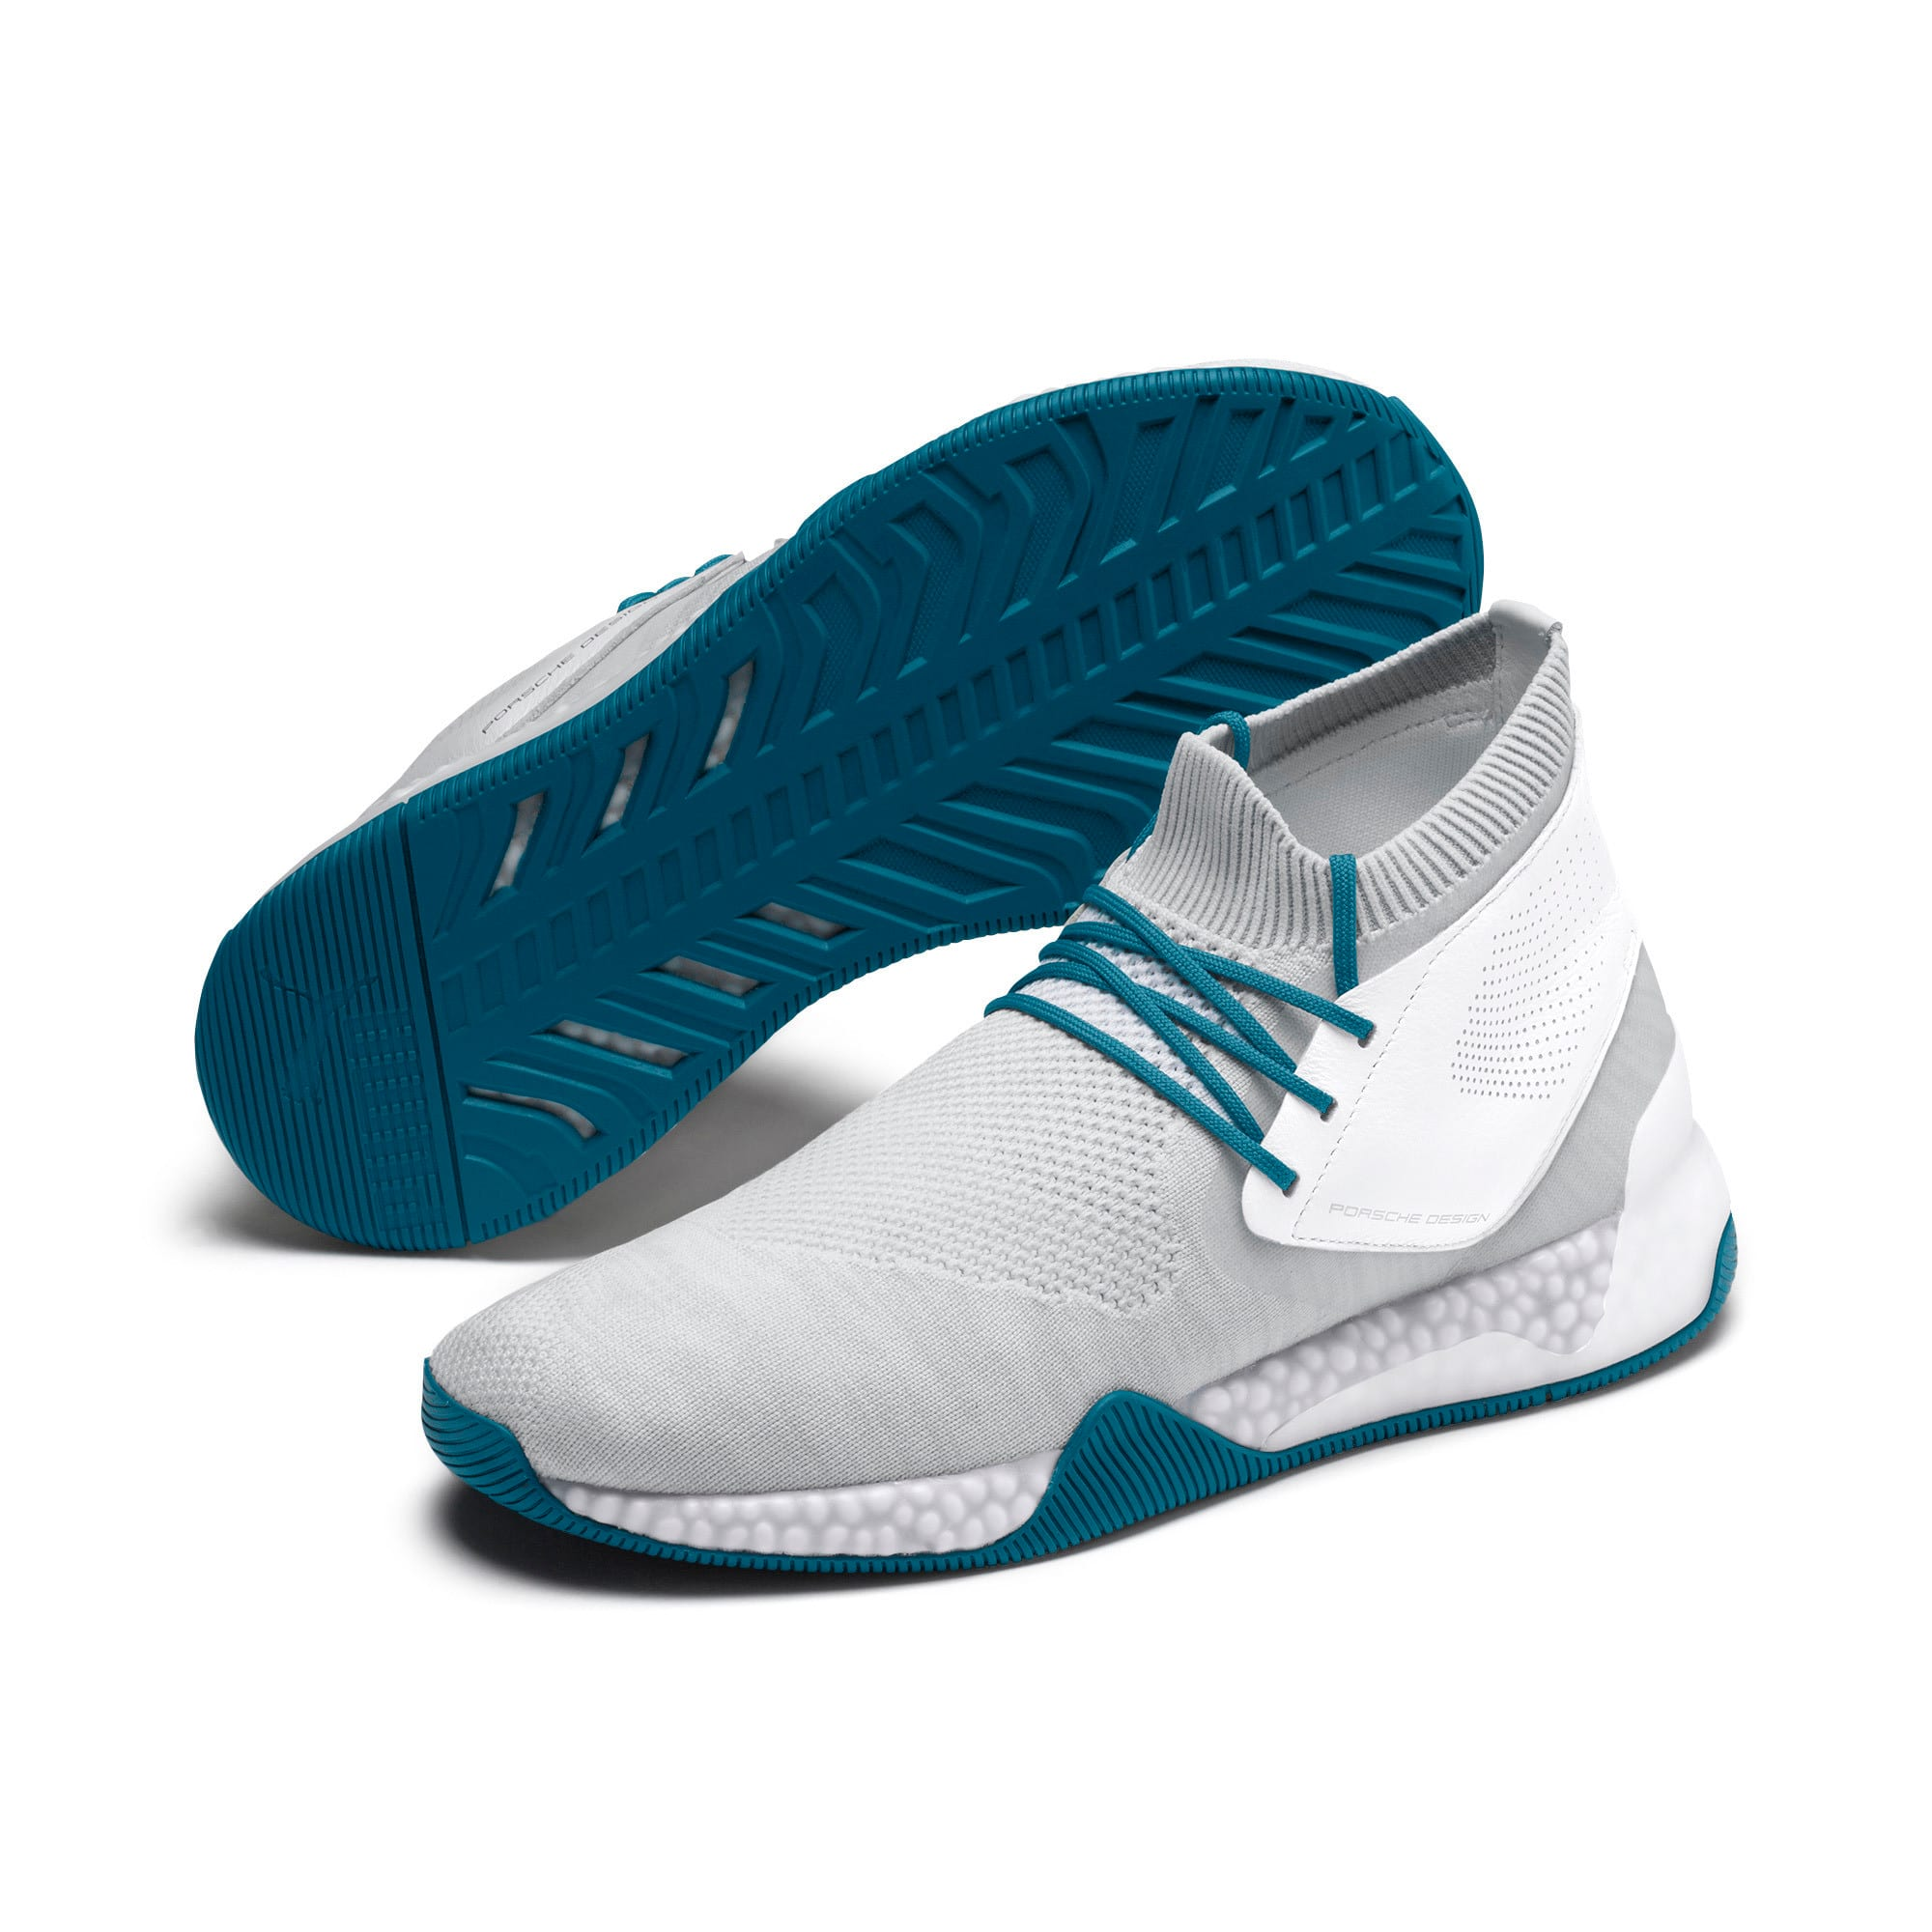 Thumbnail 3 of Porsche Design Hybrid evoKNIT Men's Trainers, White-Gray-Moroccan Blue, medium